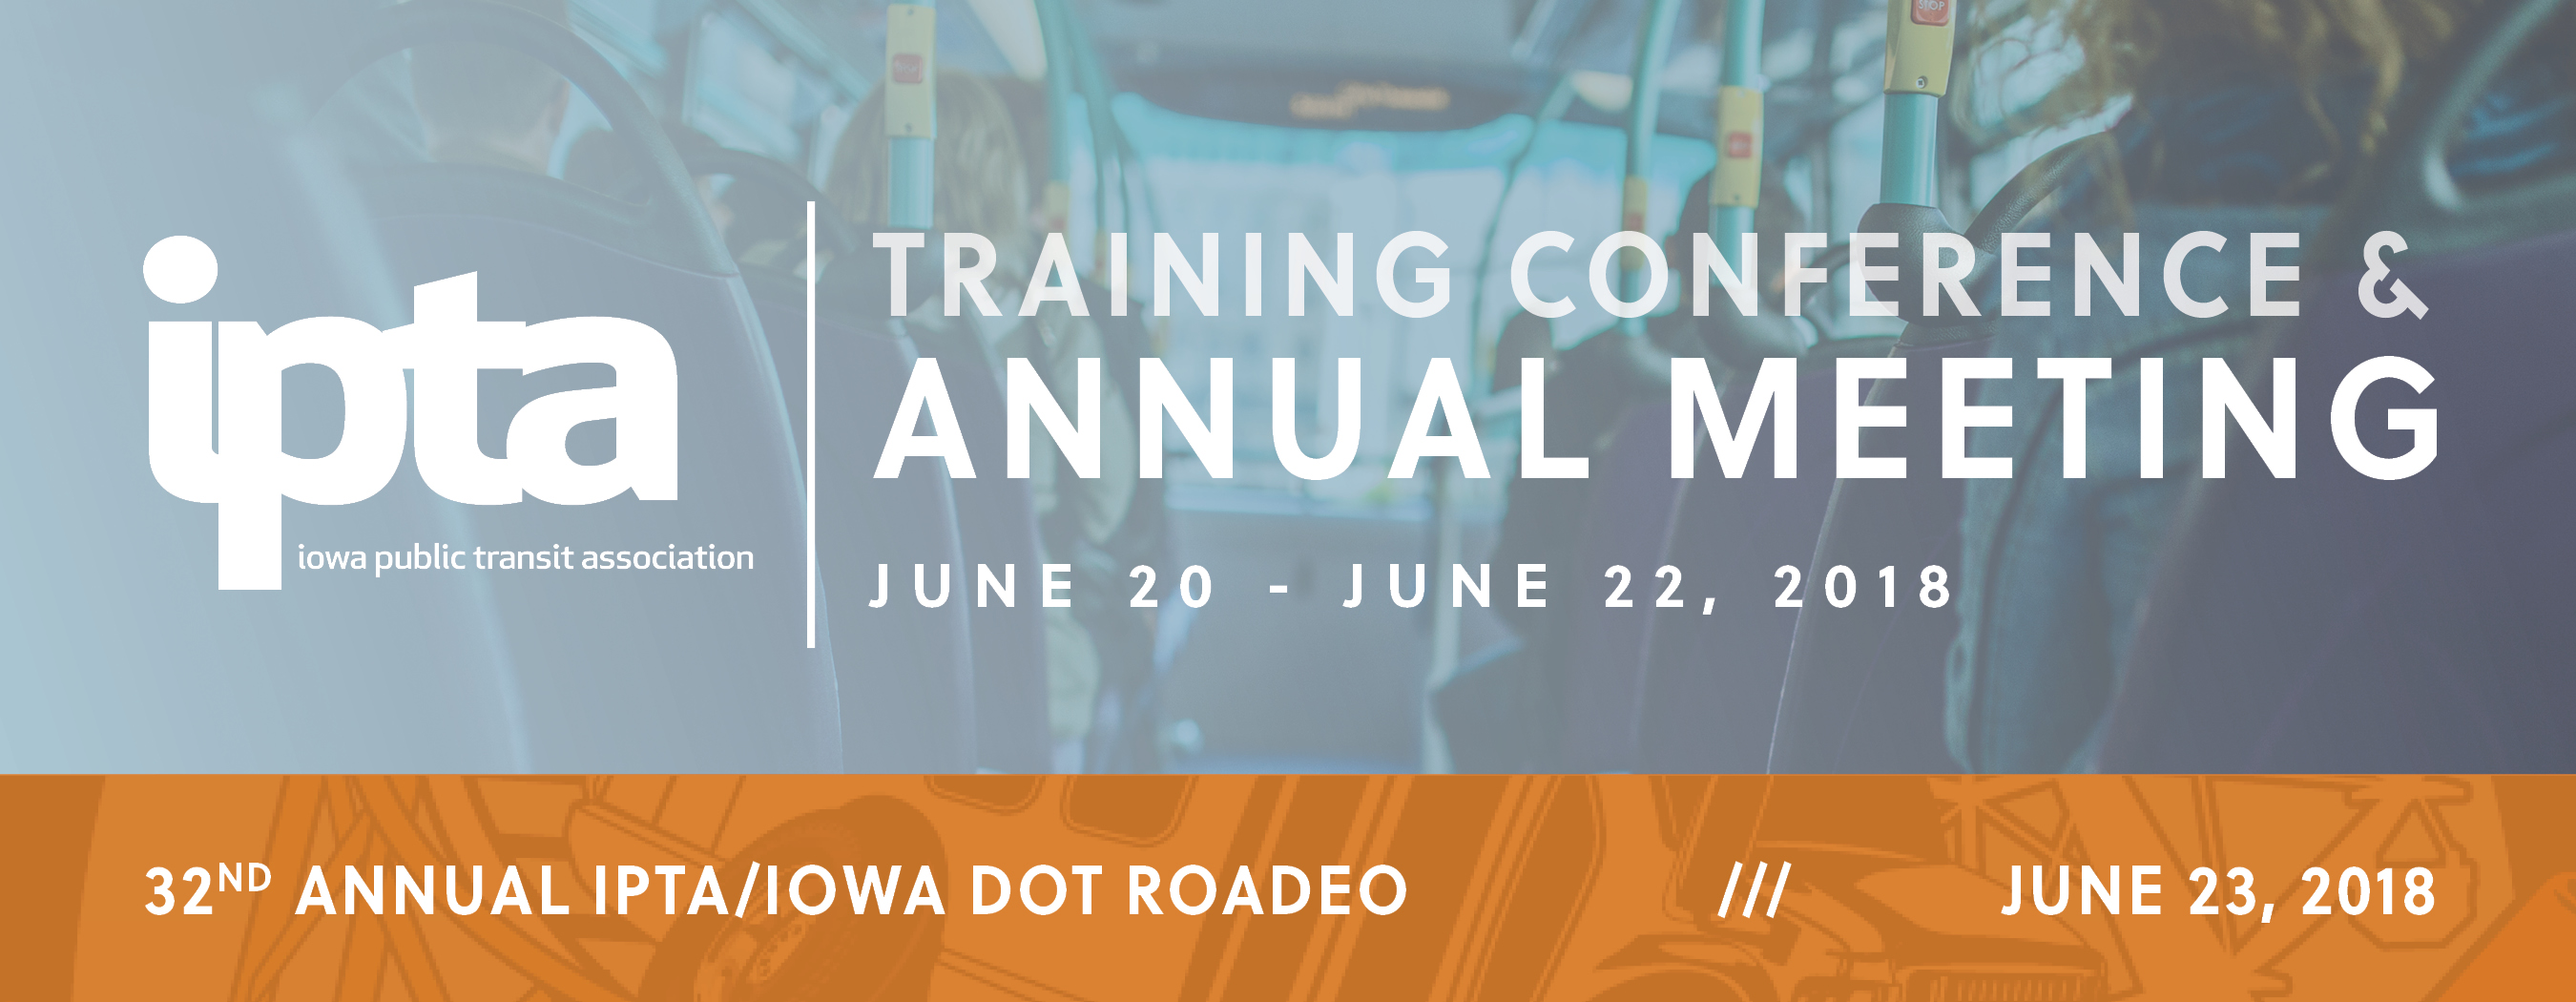 IPTA Training Conference and Annual Meeting